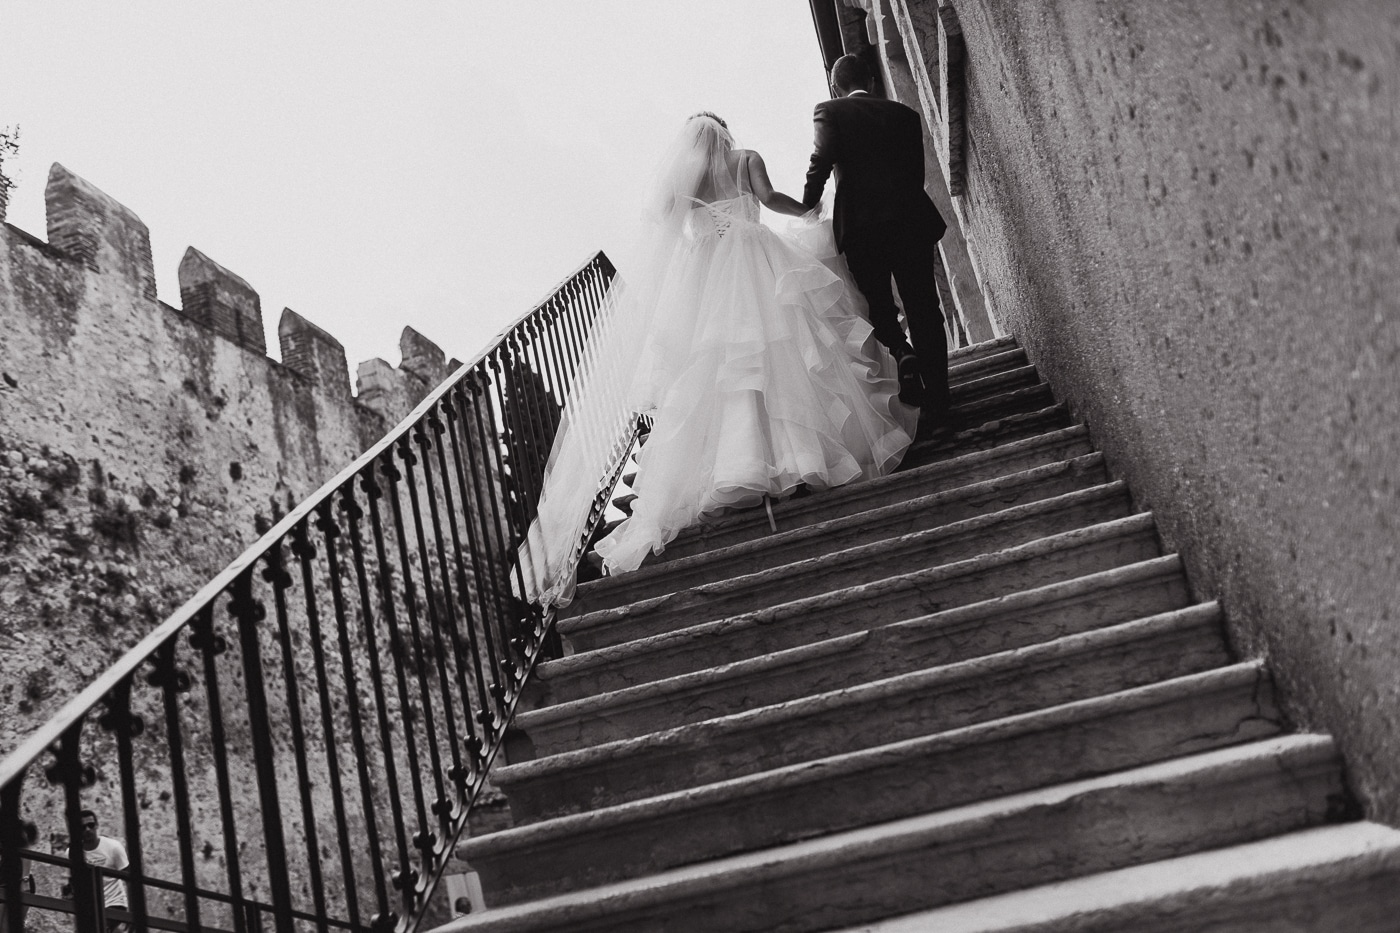 Man and woman climbing old stone steps with bridal dress swaying in the breeze